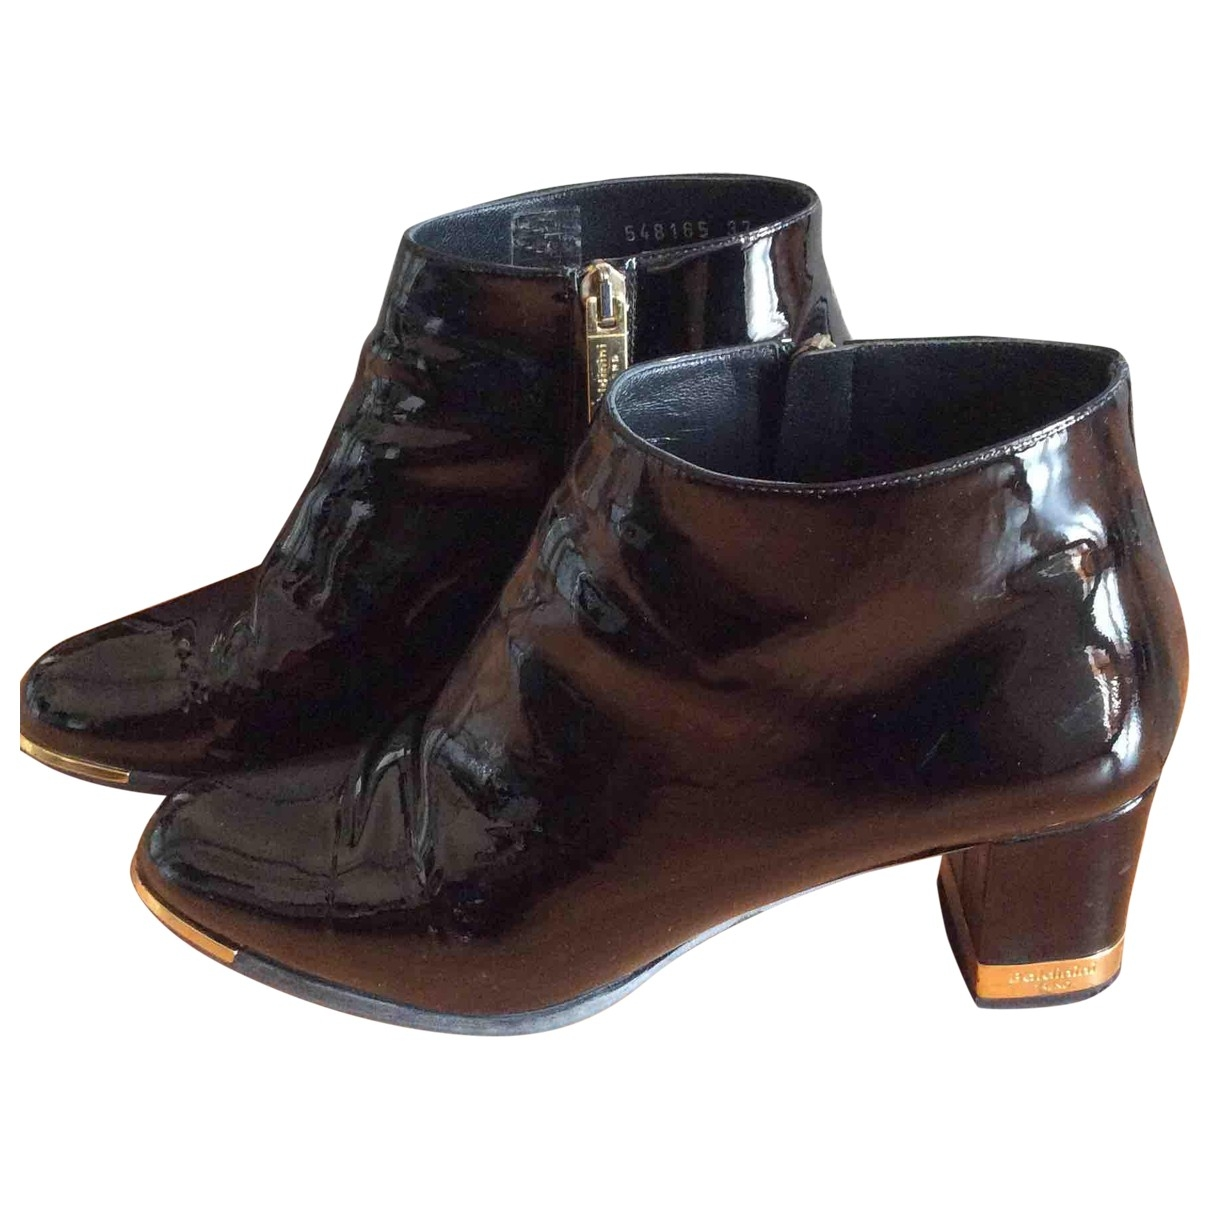 Baldinini \N Black Patent leather Ankle boots for Women 37 IT